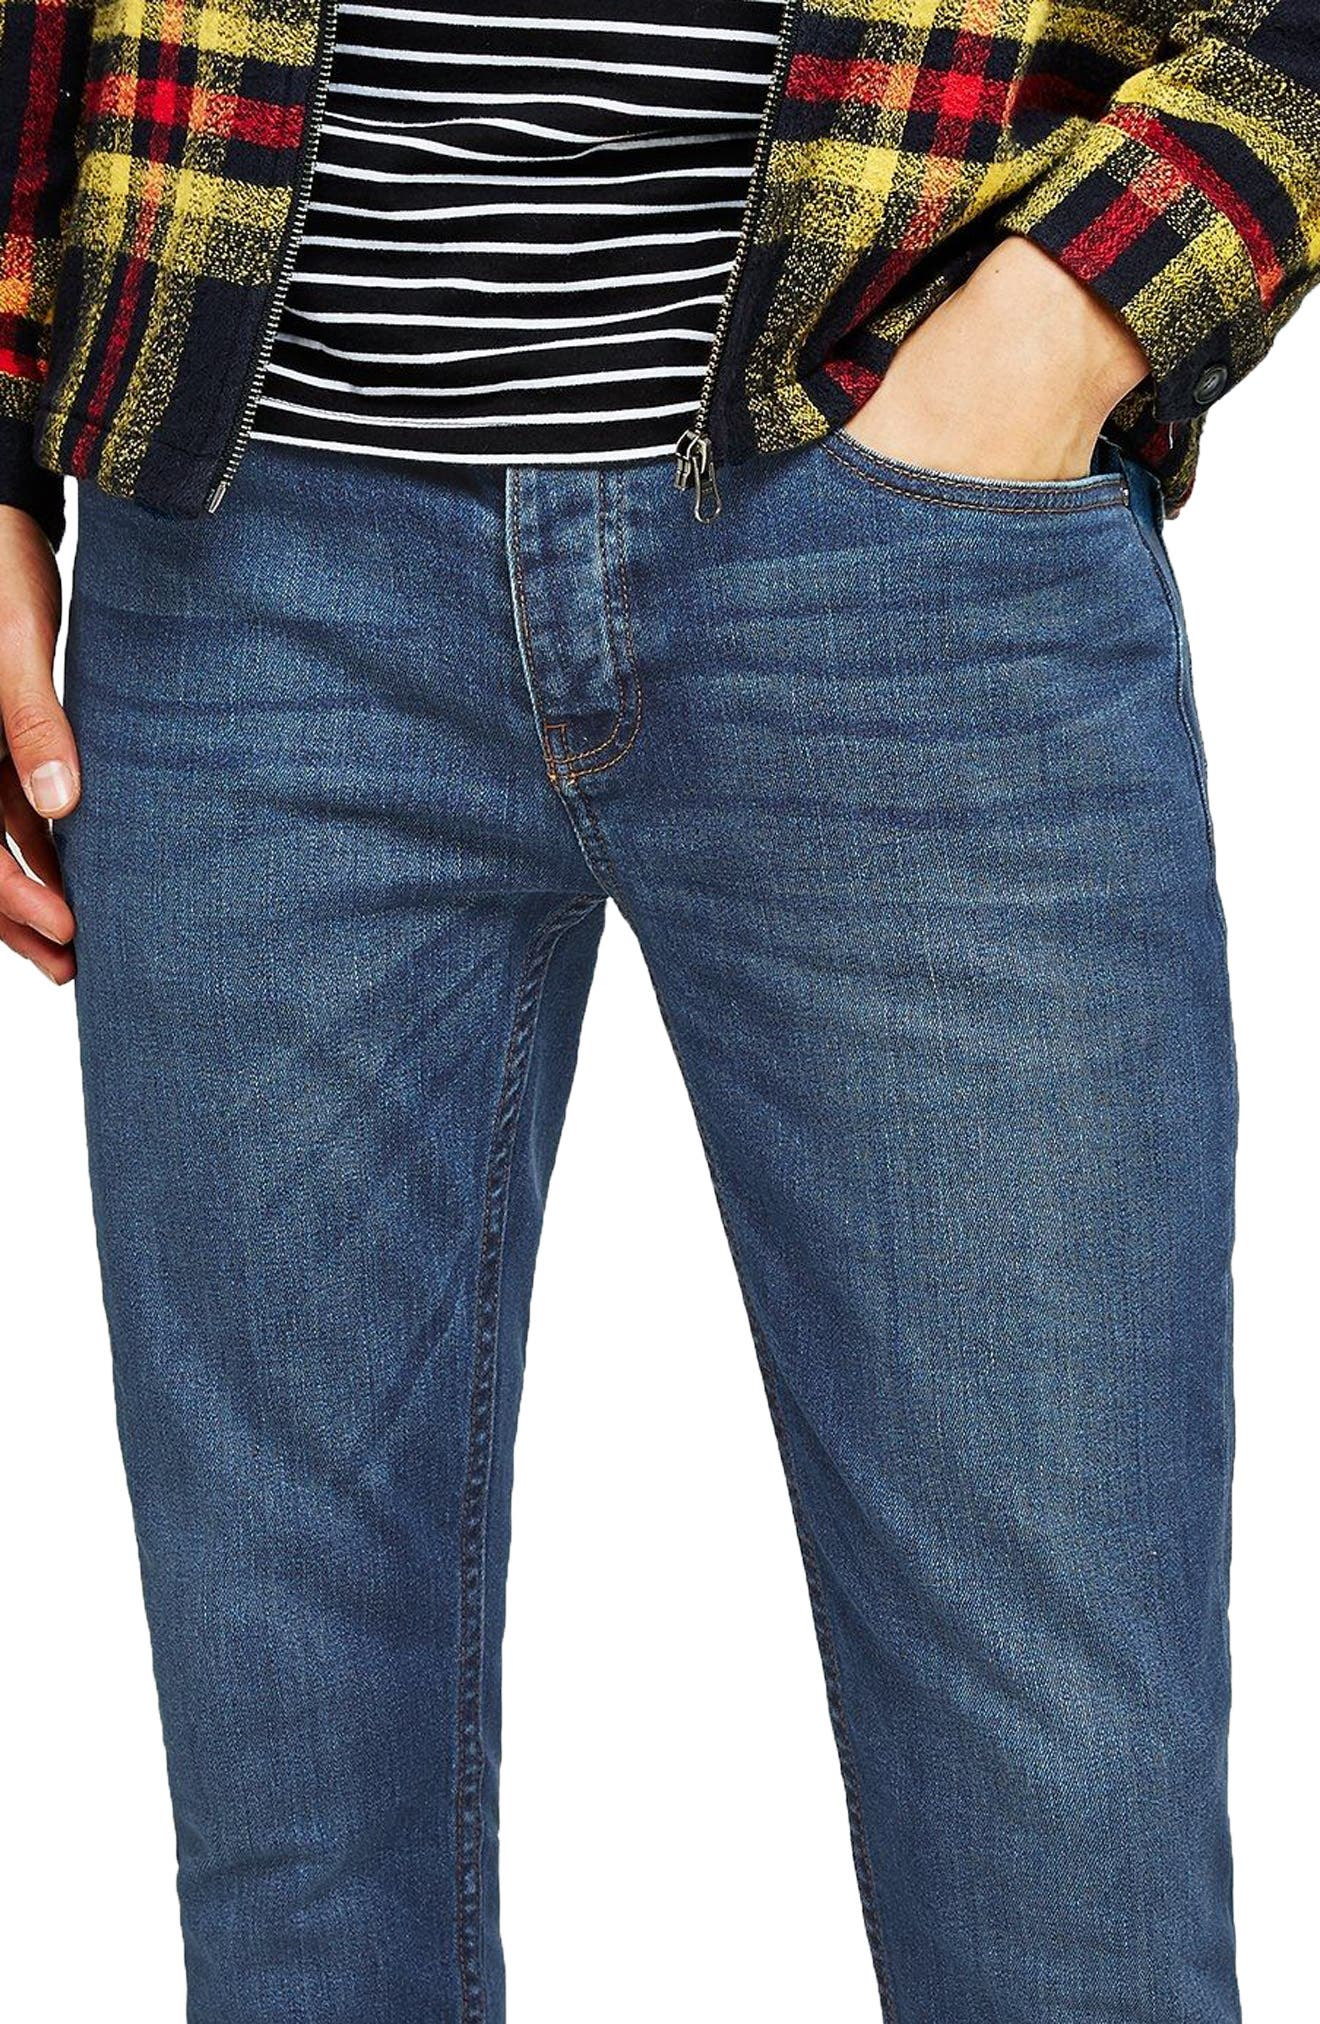 TOPMAN Stretch Skinny Fit Jeans, Main, color, BLUE